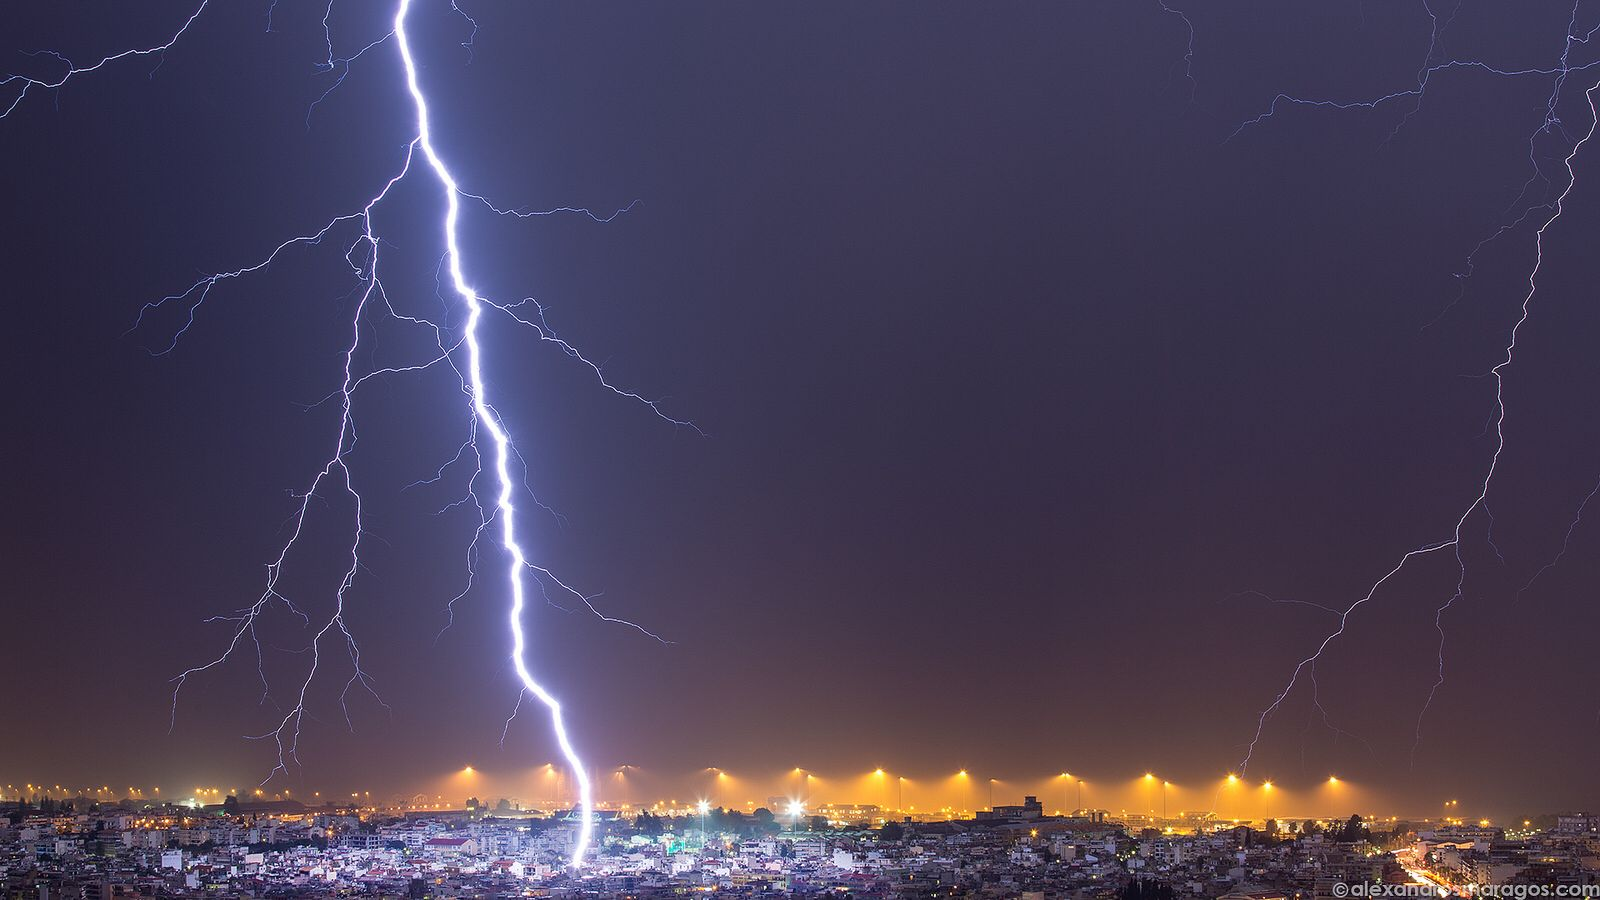 Nature's Whip! - Lightning strikes the city of Patras, Greece